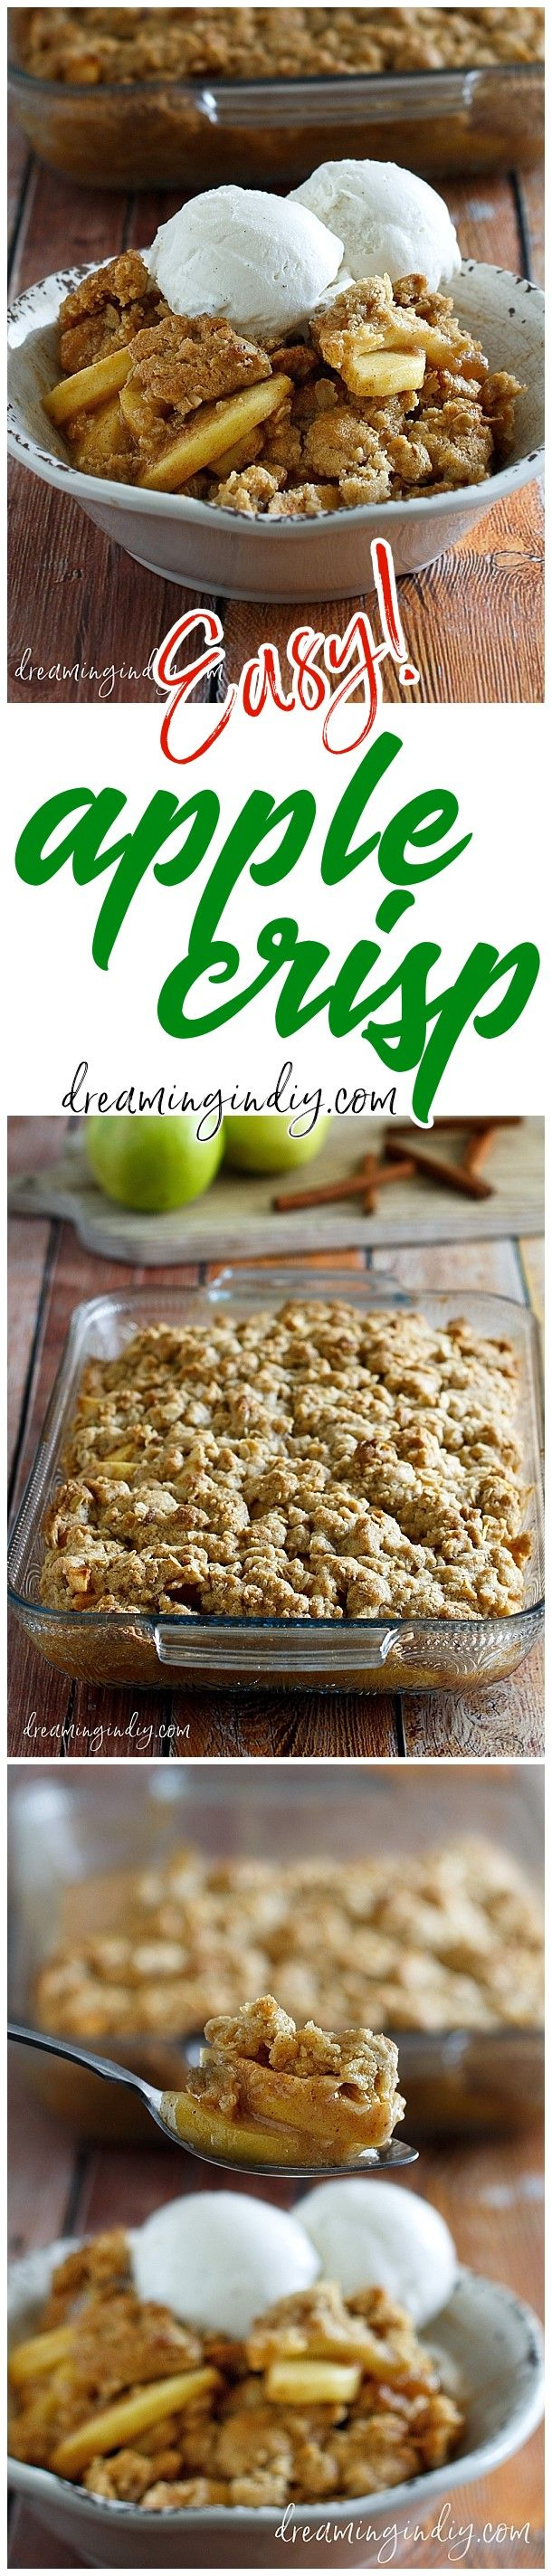 The Best Easy Apple Crisp Recipe - Classic Fall and Winter Dessert Family Favorite must for Thanksgiving and Christmas Dinner parties - Dreaming in DIY #applecrisp #falldessert #applerecipes